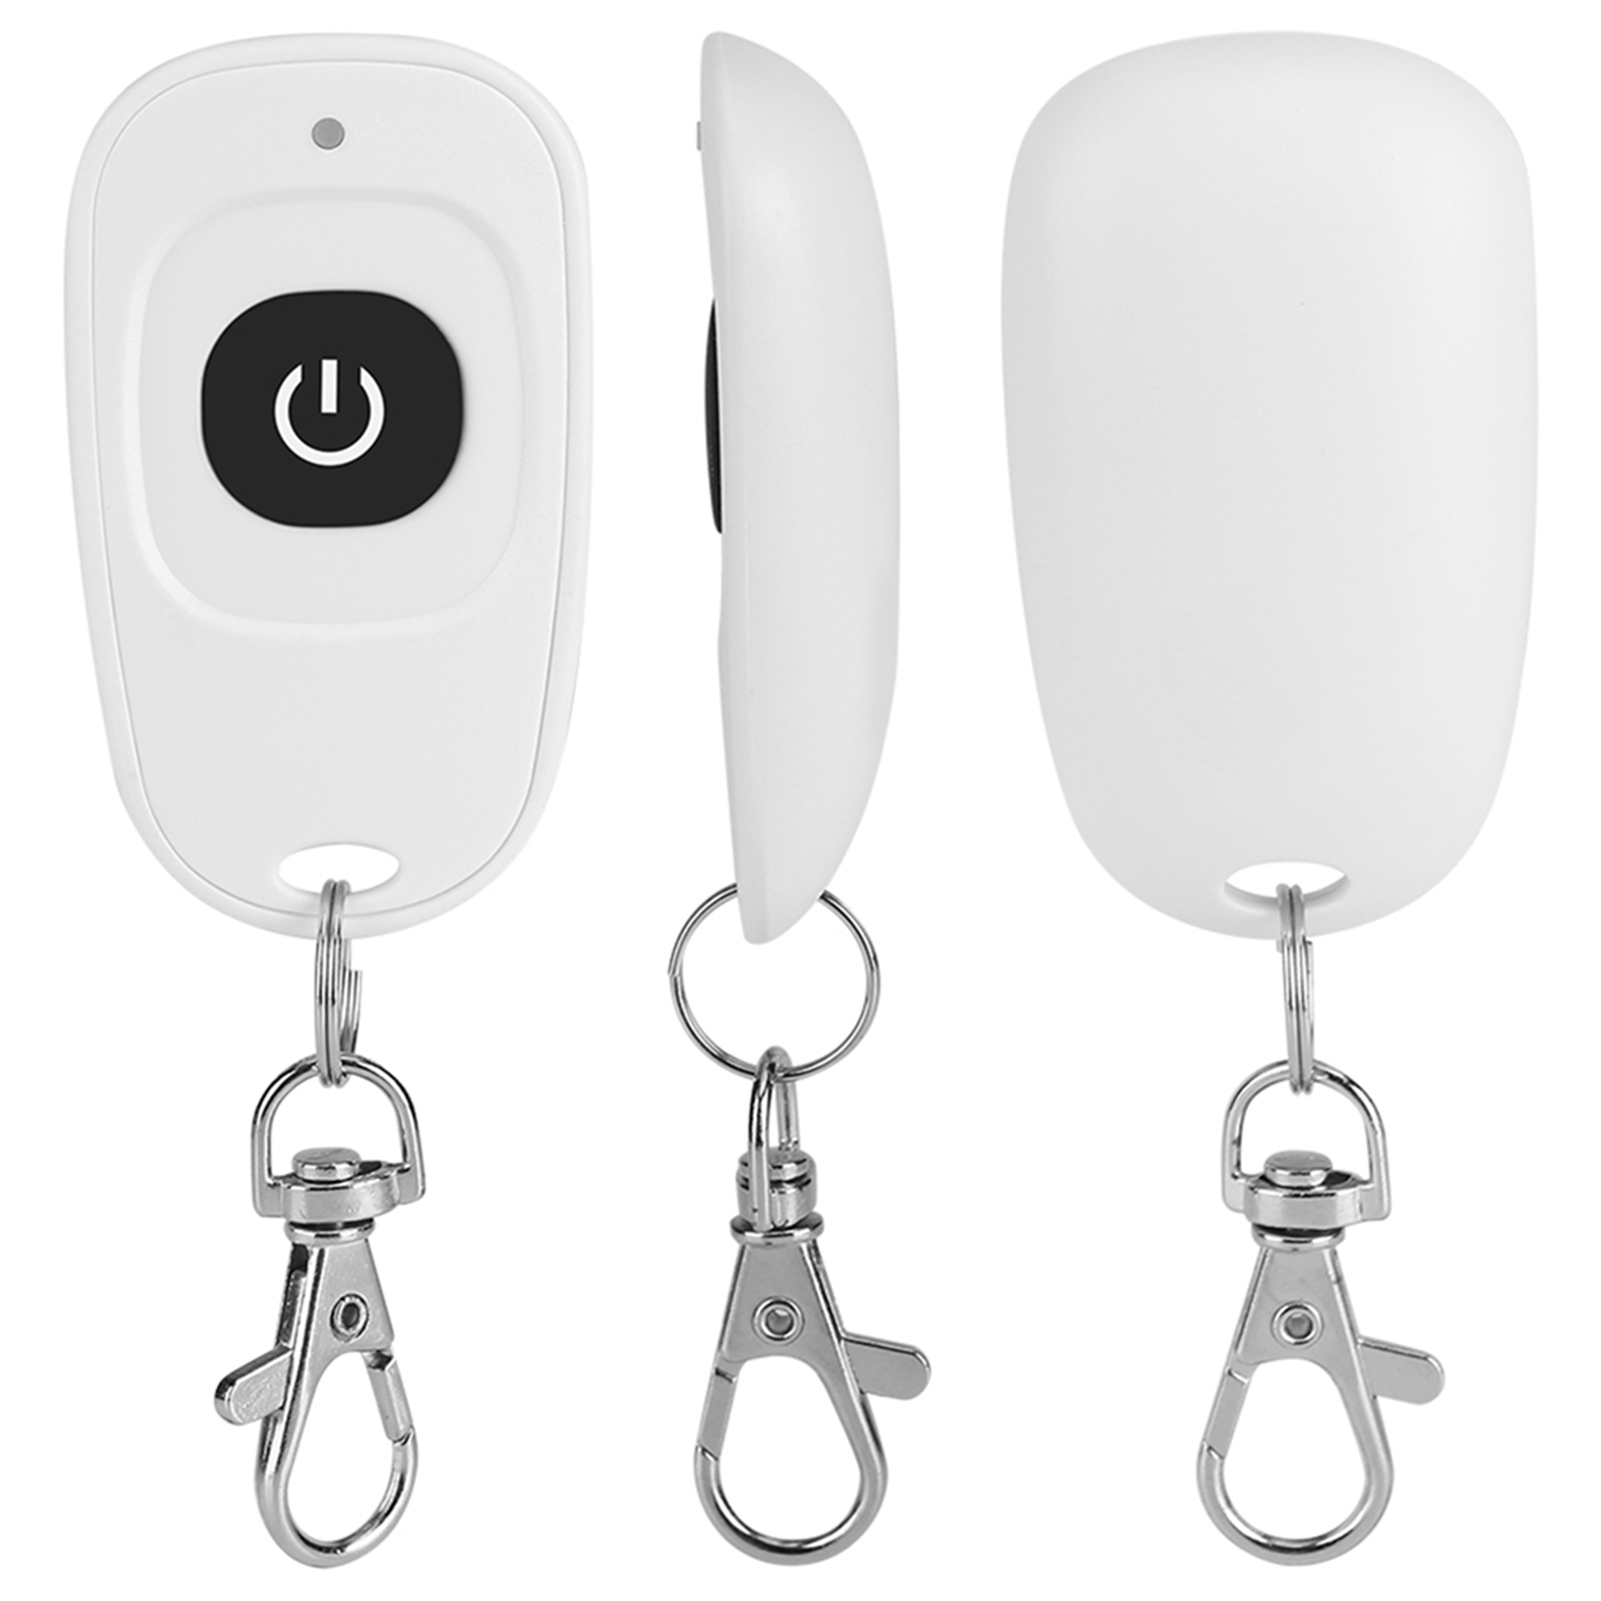 433MHz-EV1527-RF-Wireless-Transmitter-Garage-Door-1-4-Channel-Key-Remote-Control miniature 17